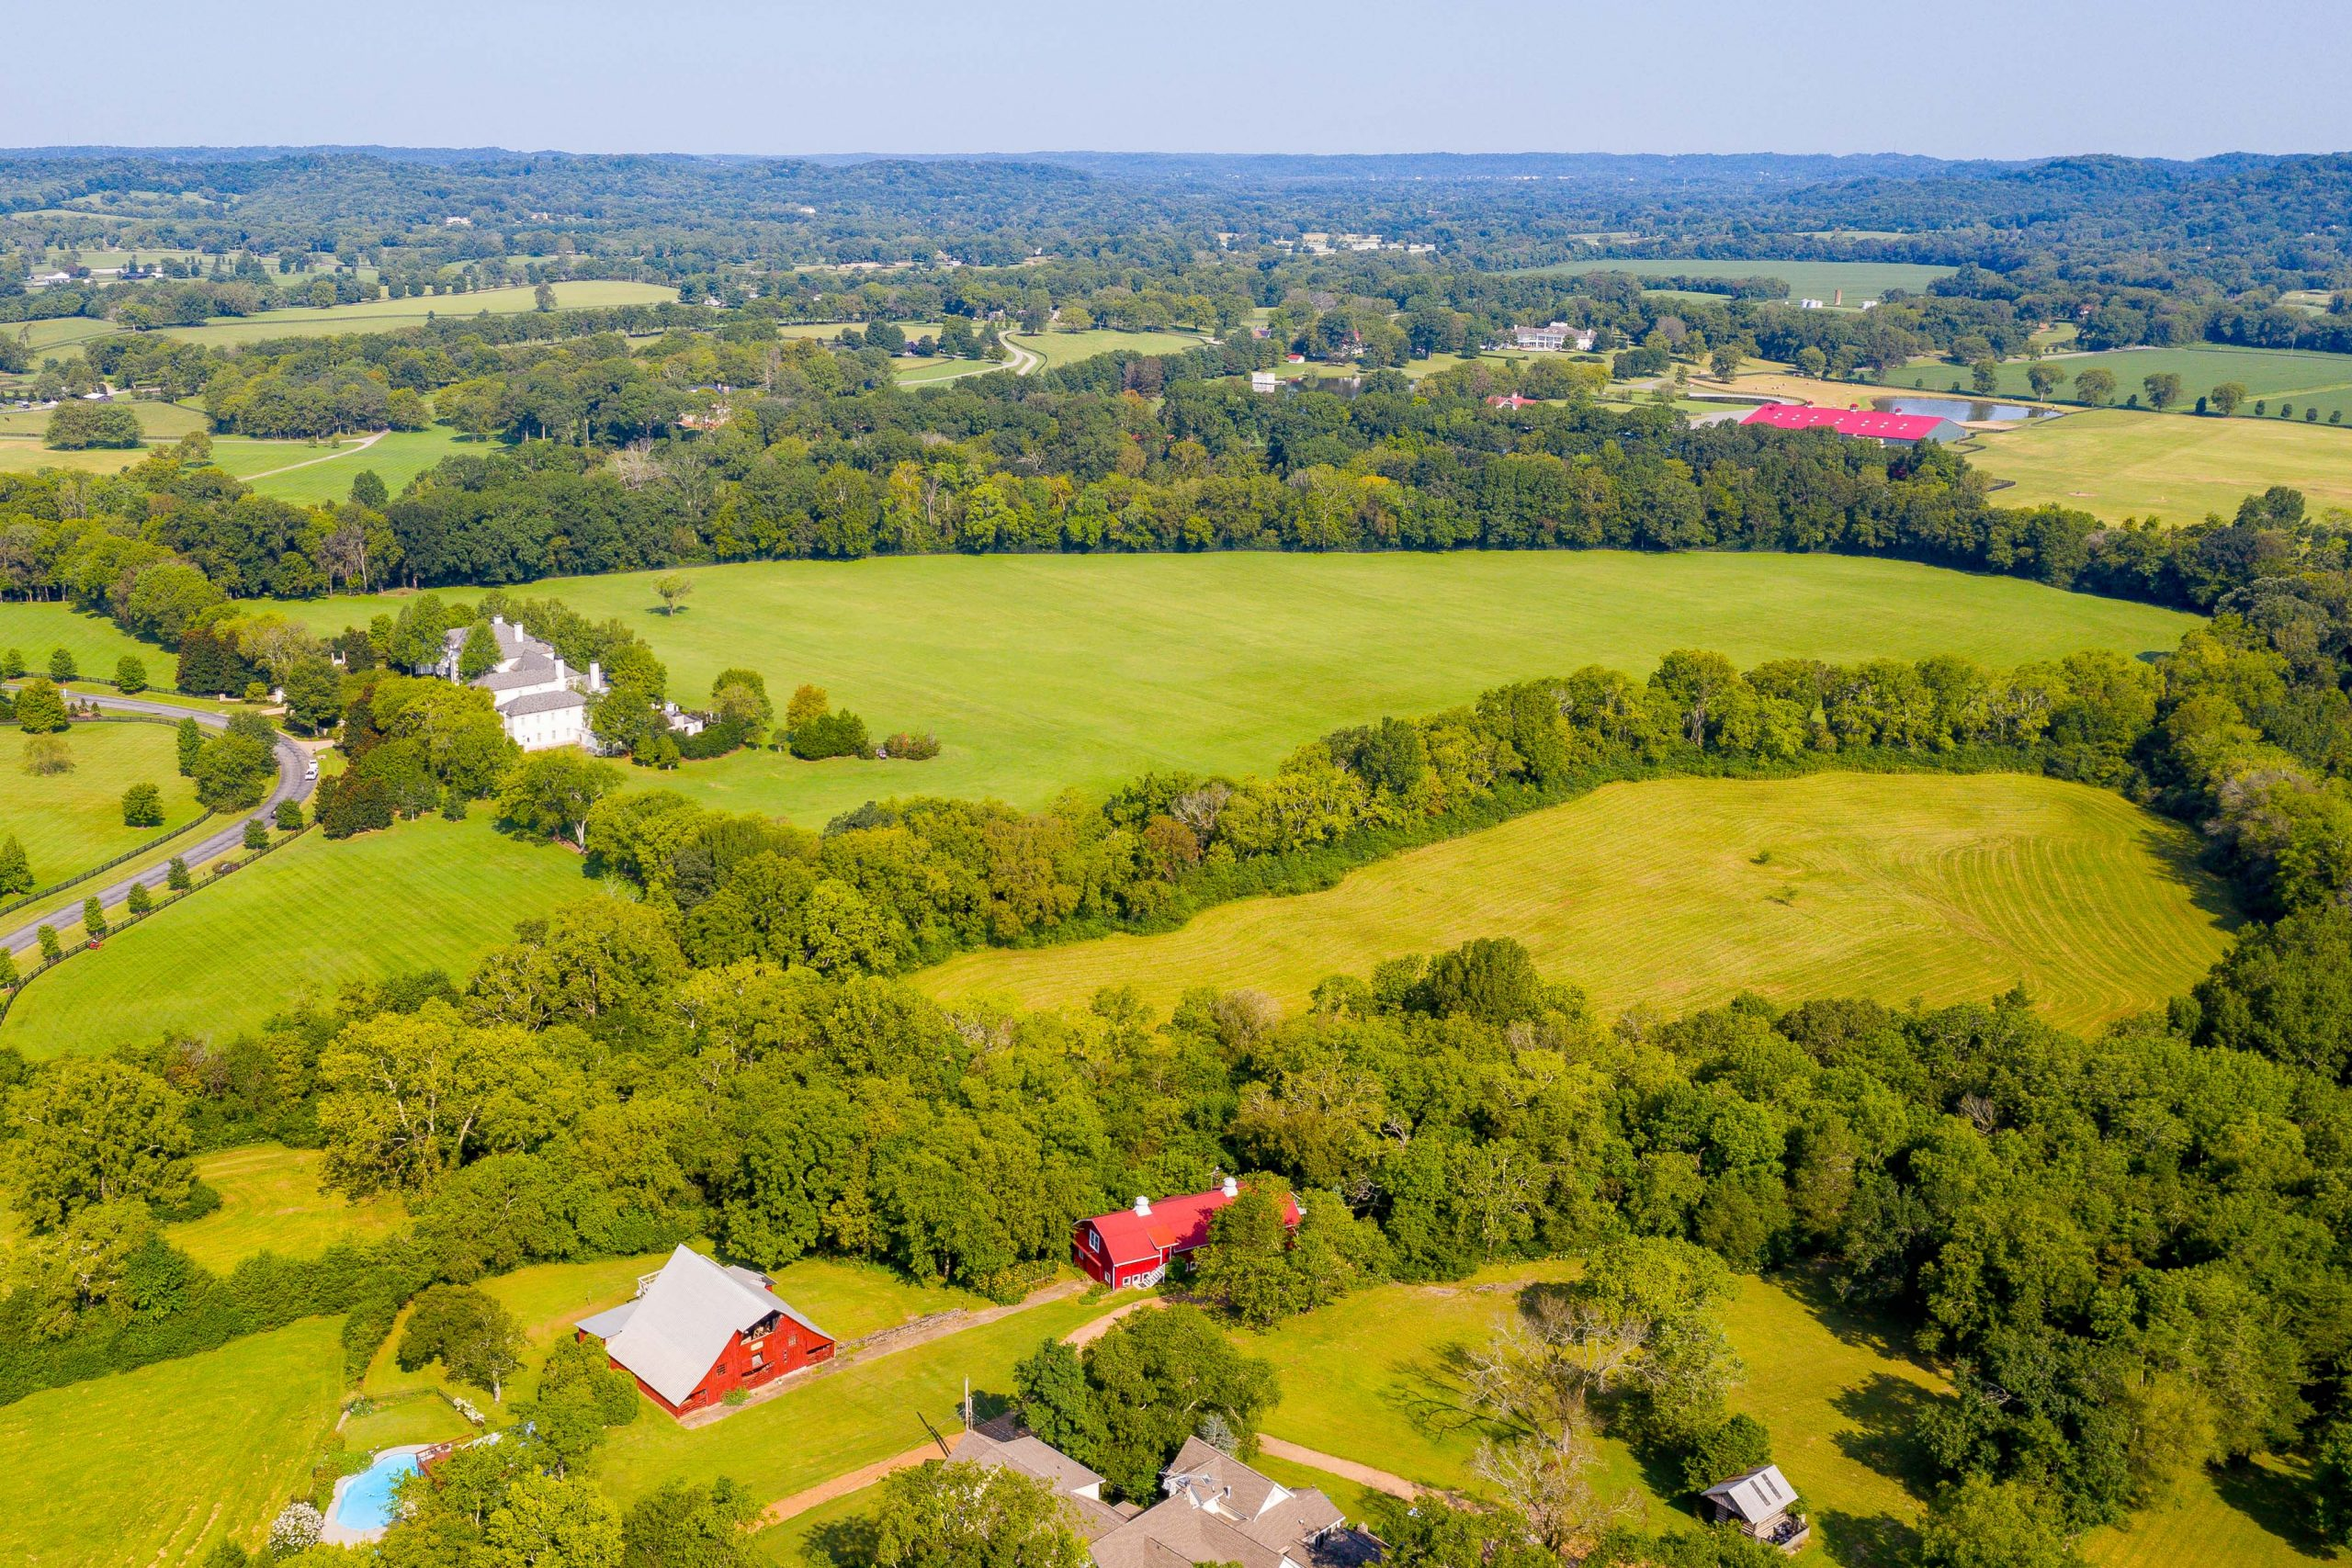 Drone Photography and Videography for Underdeveloped Land and Farms